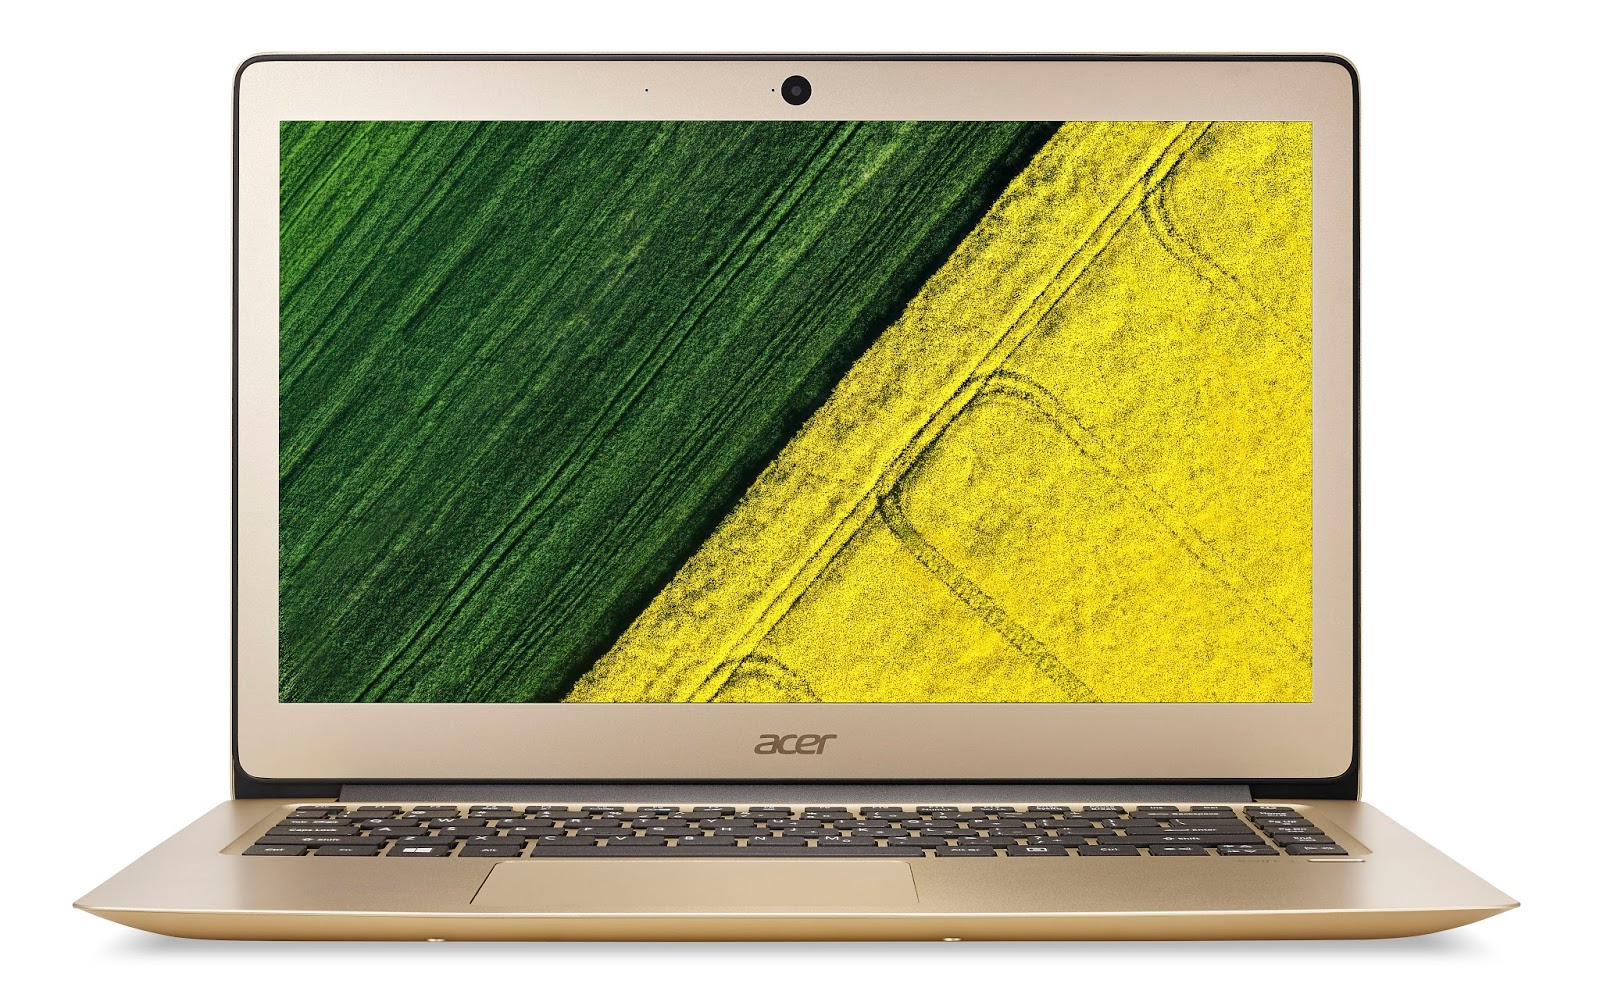 ACER FP SERIES DRIVERS WINDOWS